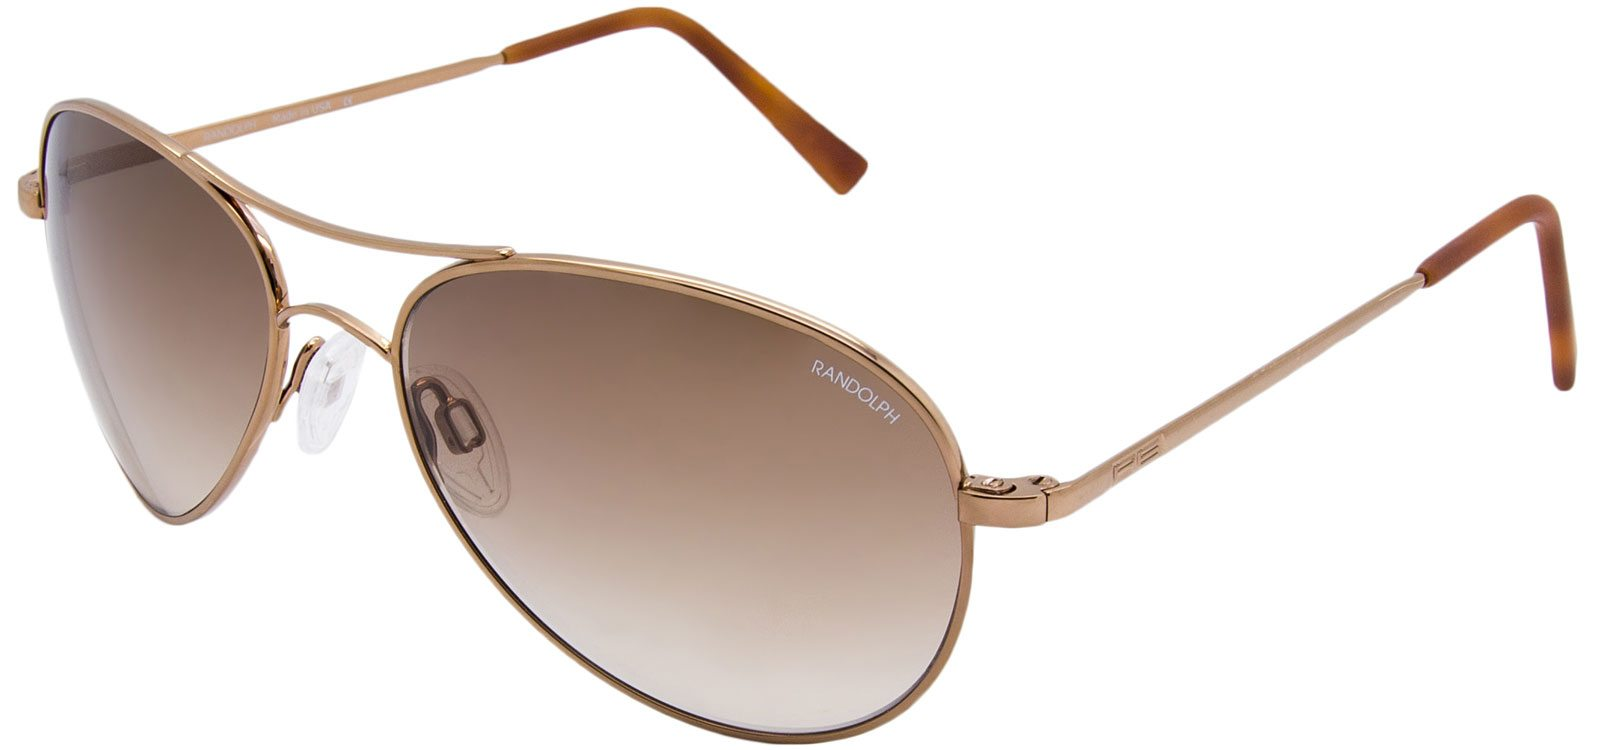 Women's aviator sunglasses to wear at formal events: the Amelia. | Randolph Engineering